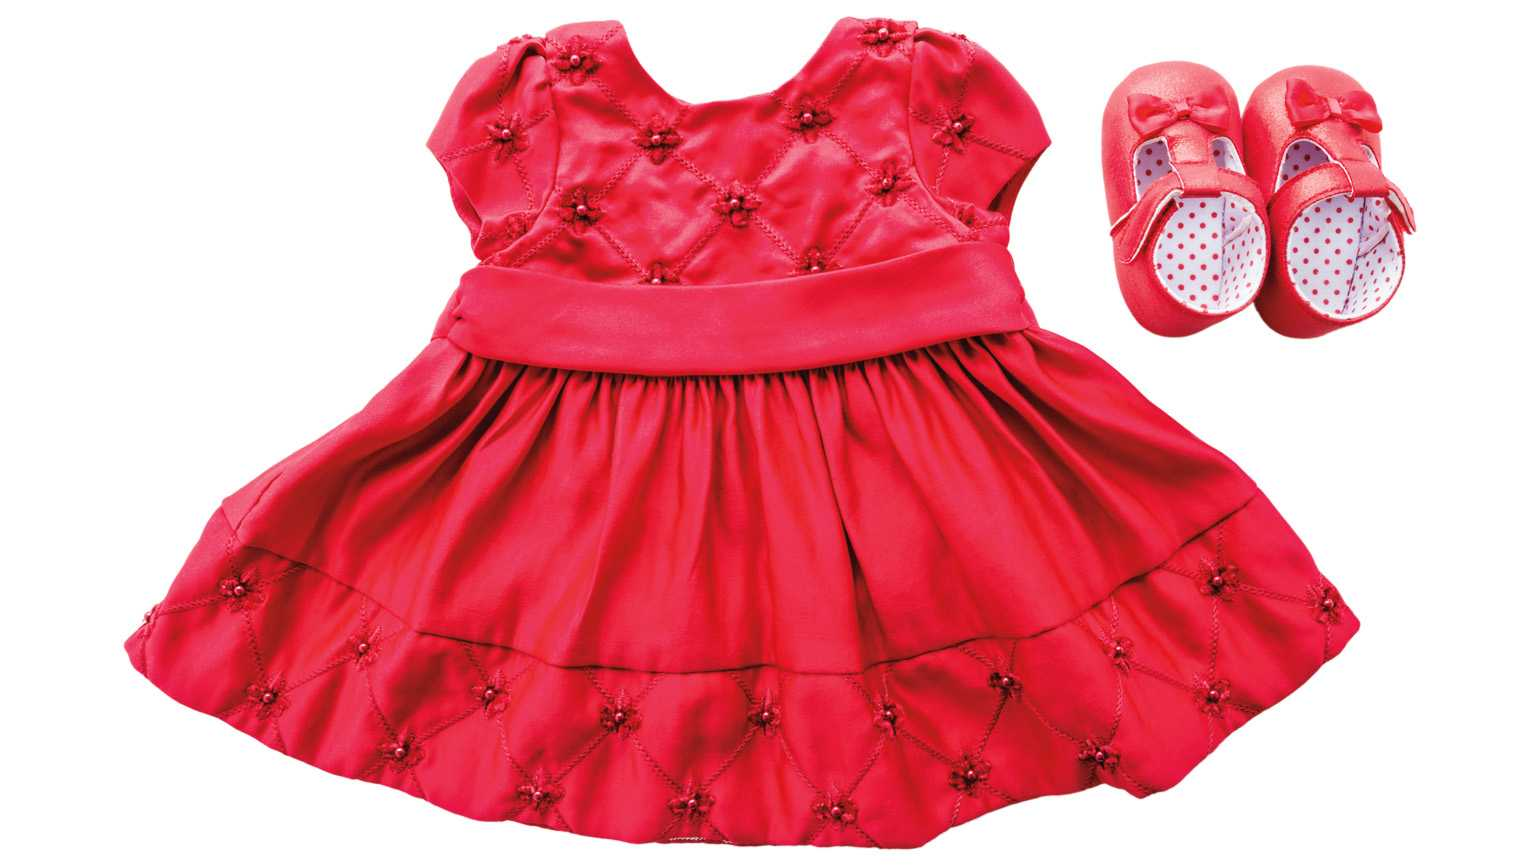 A small red dress with a matching pair of red shoes; Photo credit: Getty Images